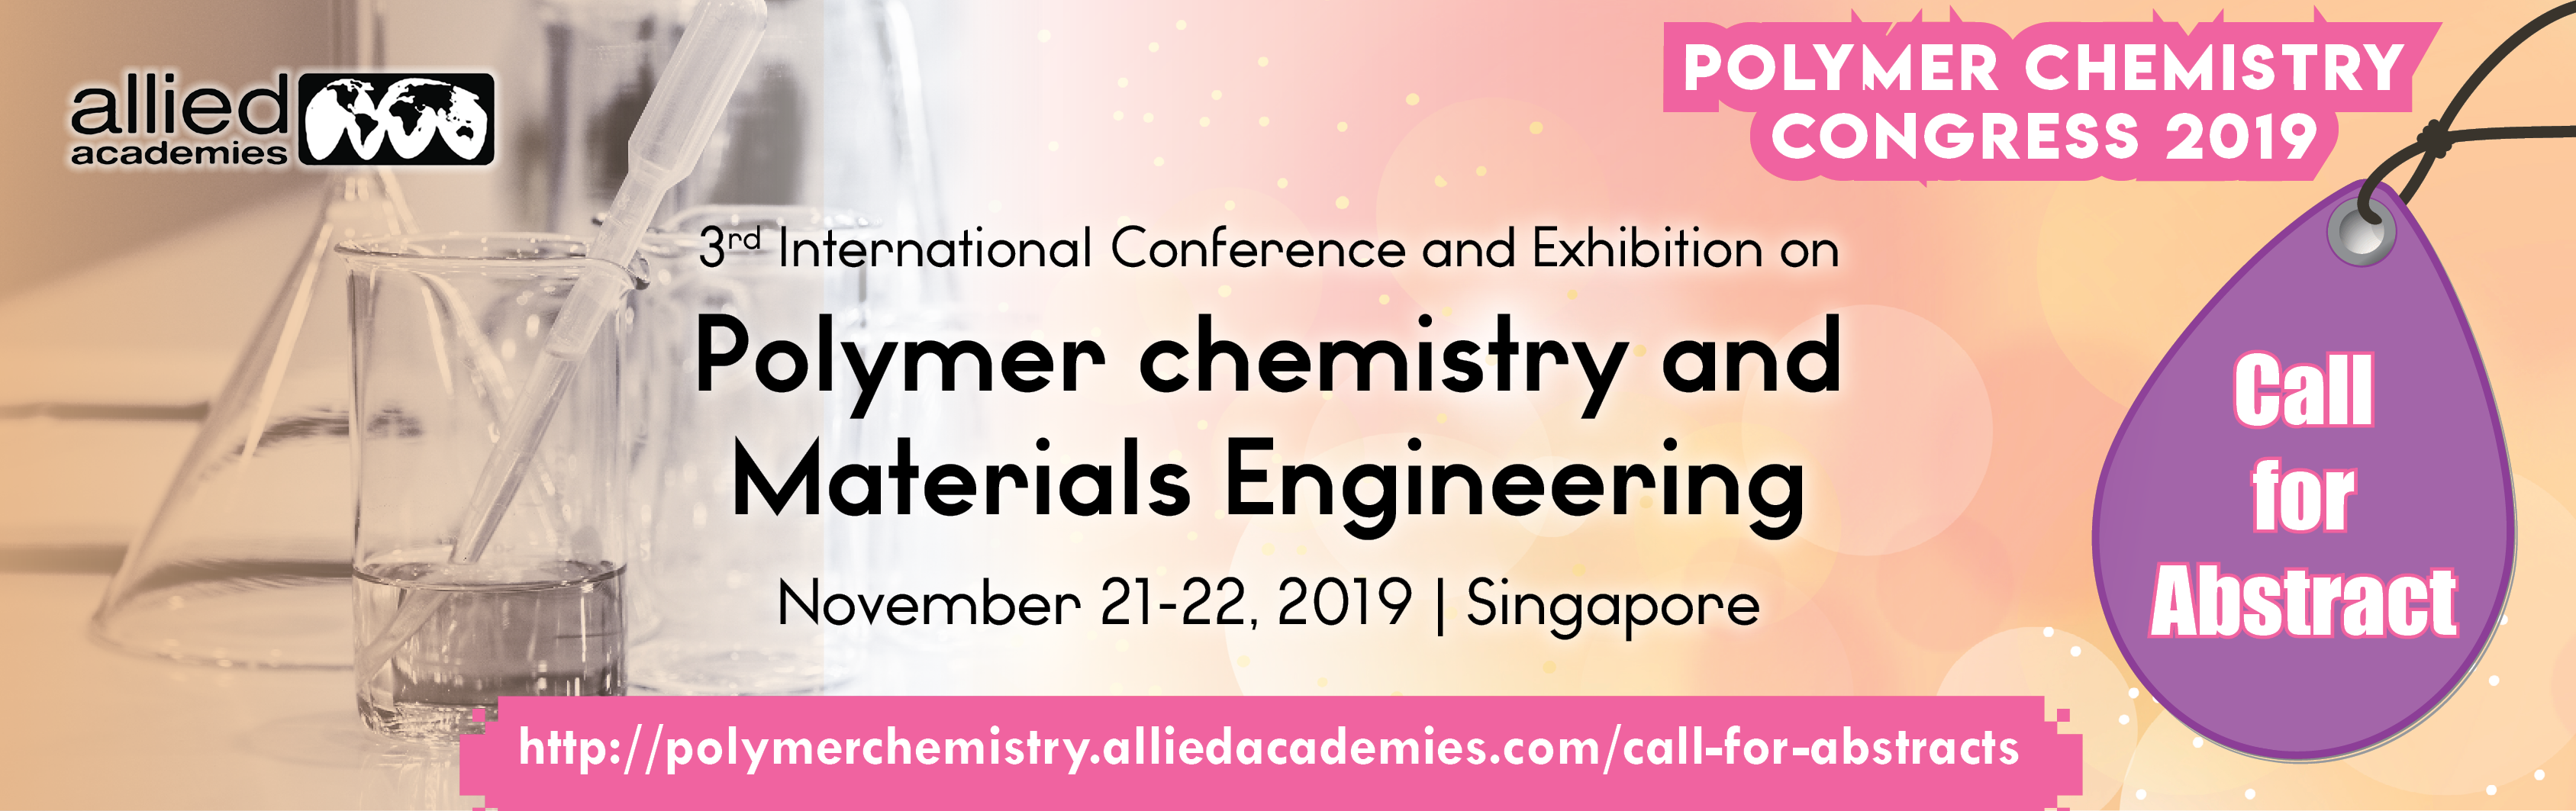 3rd International Conference and Exhibition on Polymer Chemistry and Materials Engineering